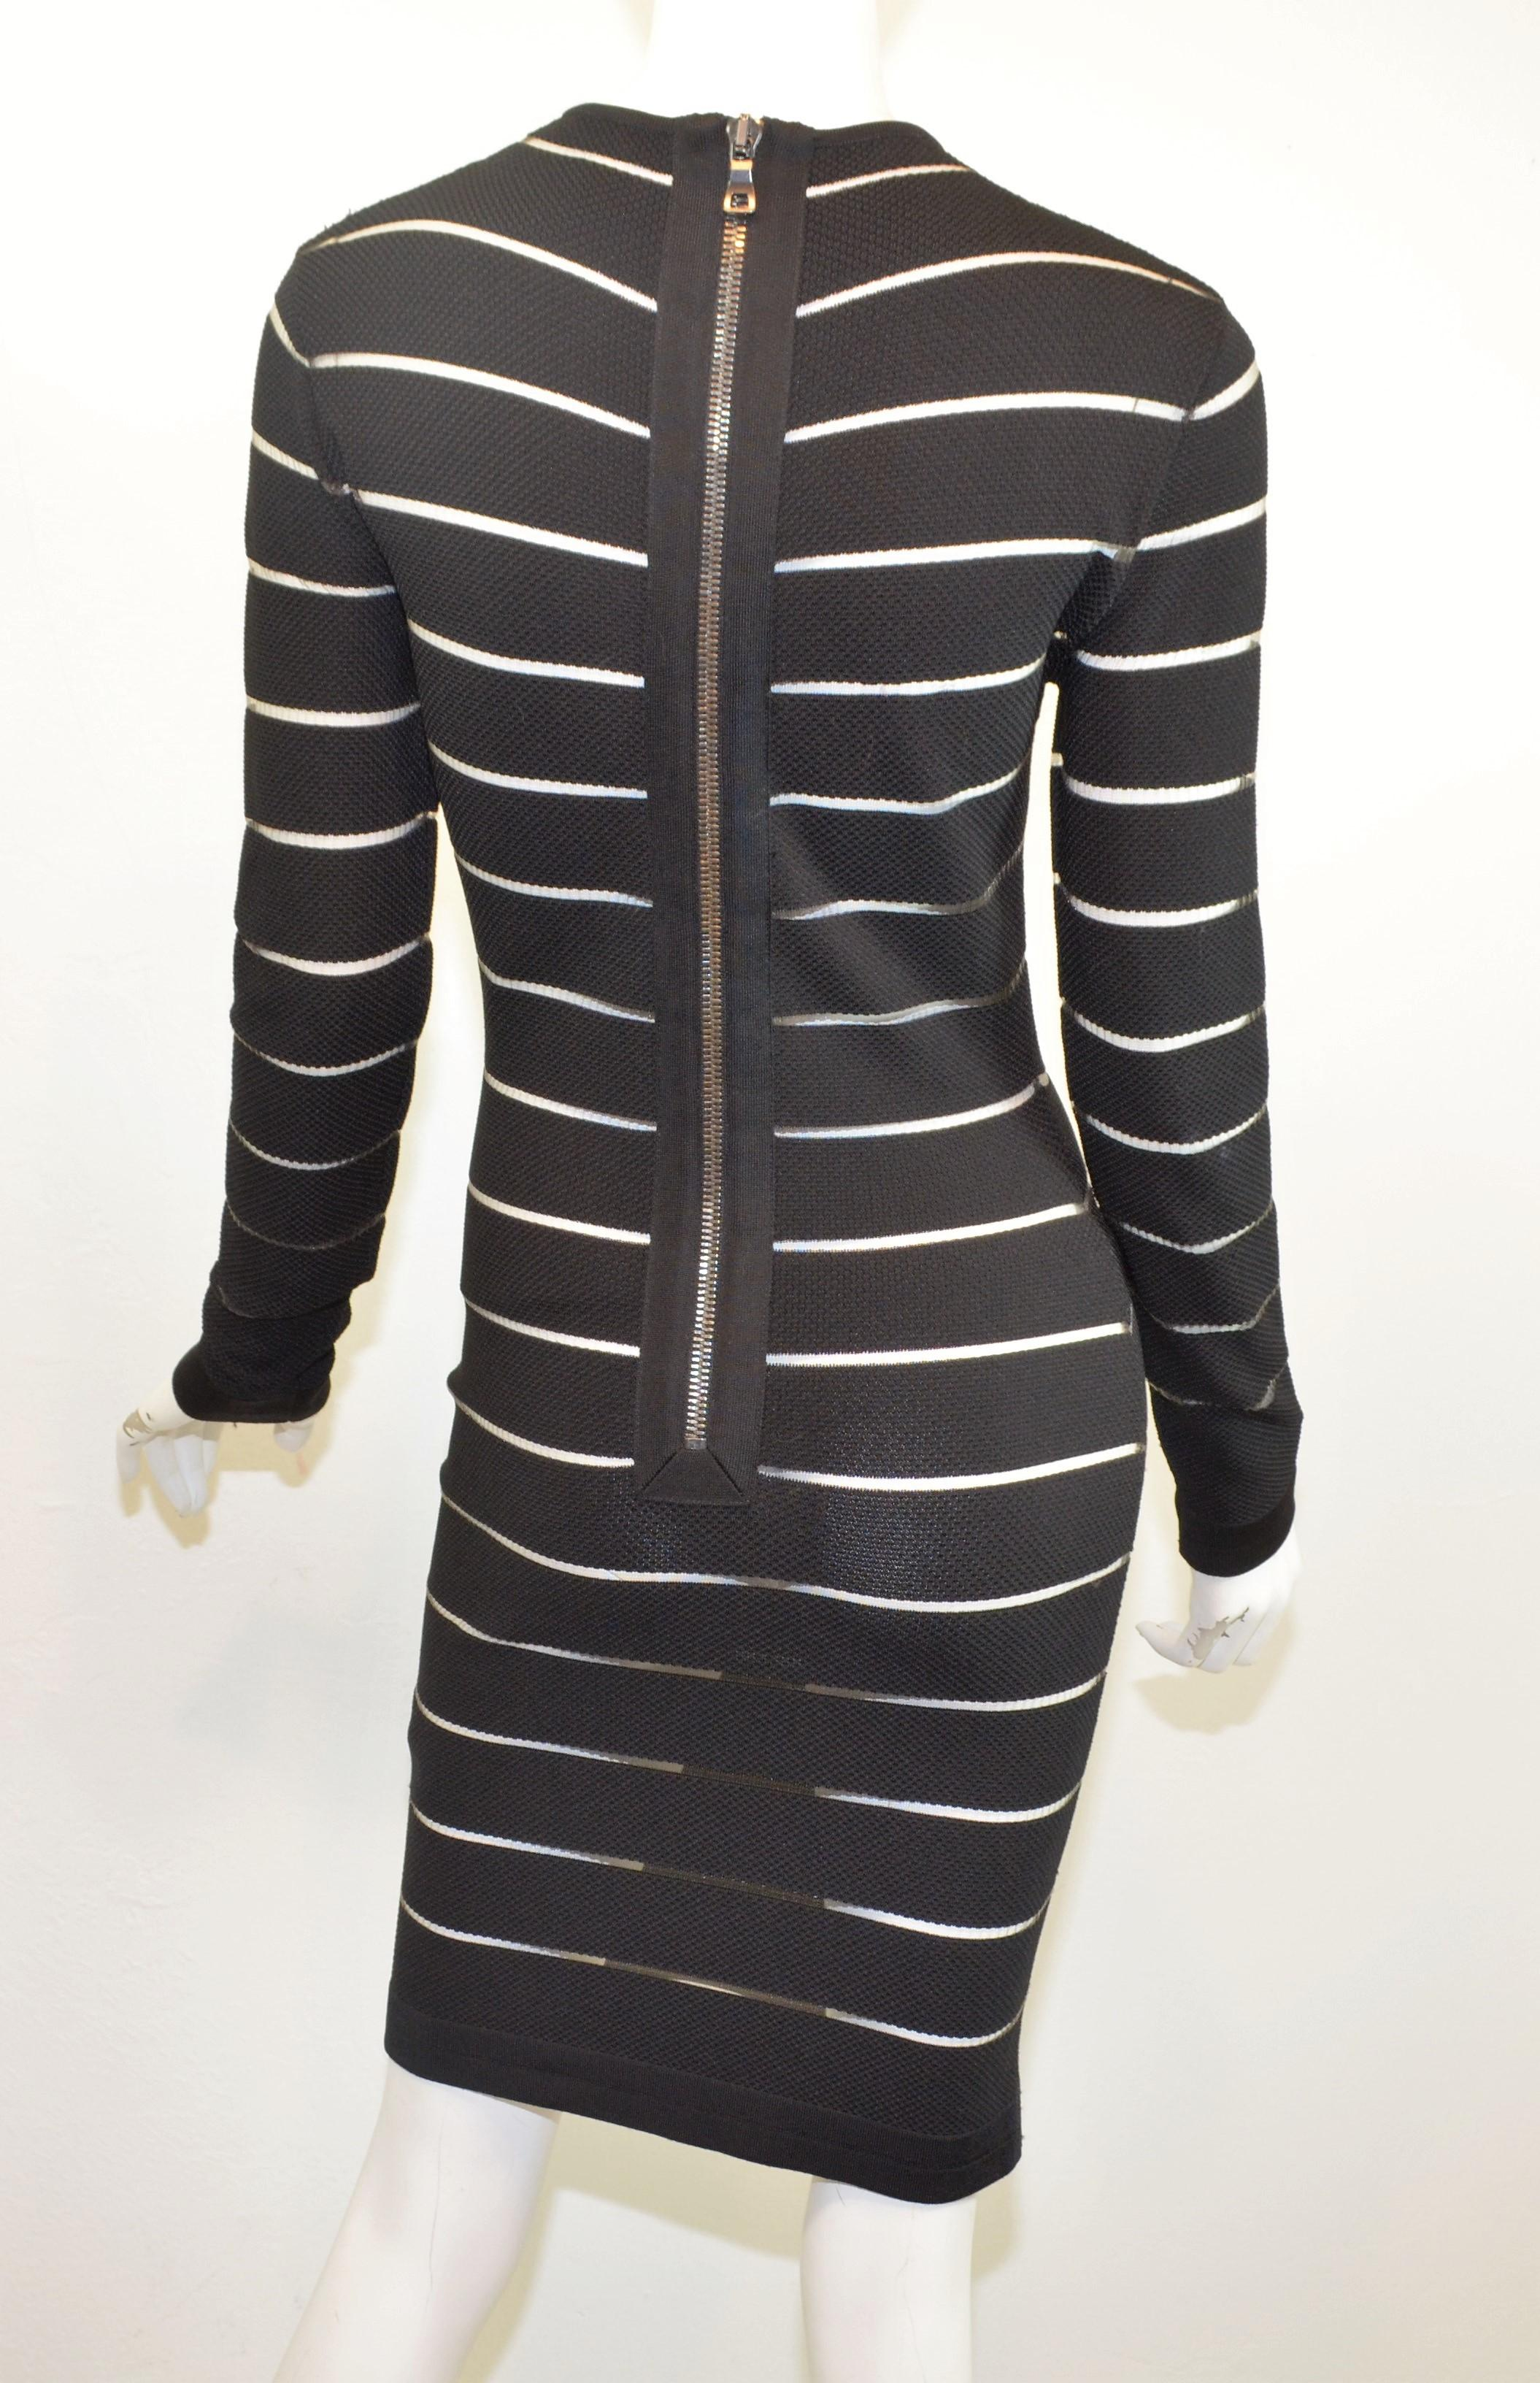 af3feb6d Balmain Sheer Striped Bodycon Dress For Sale at 1stdibs